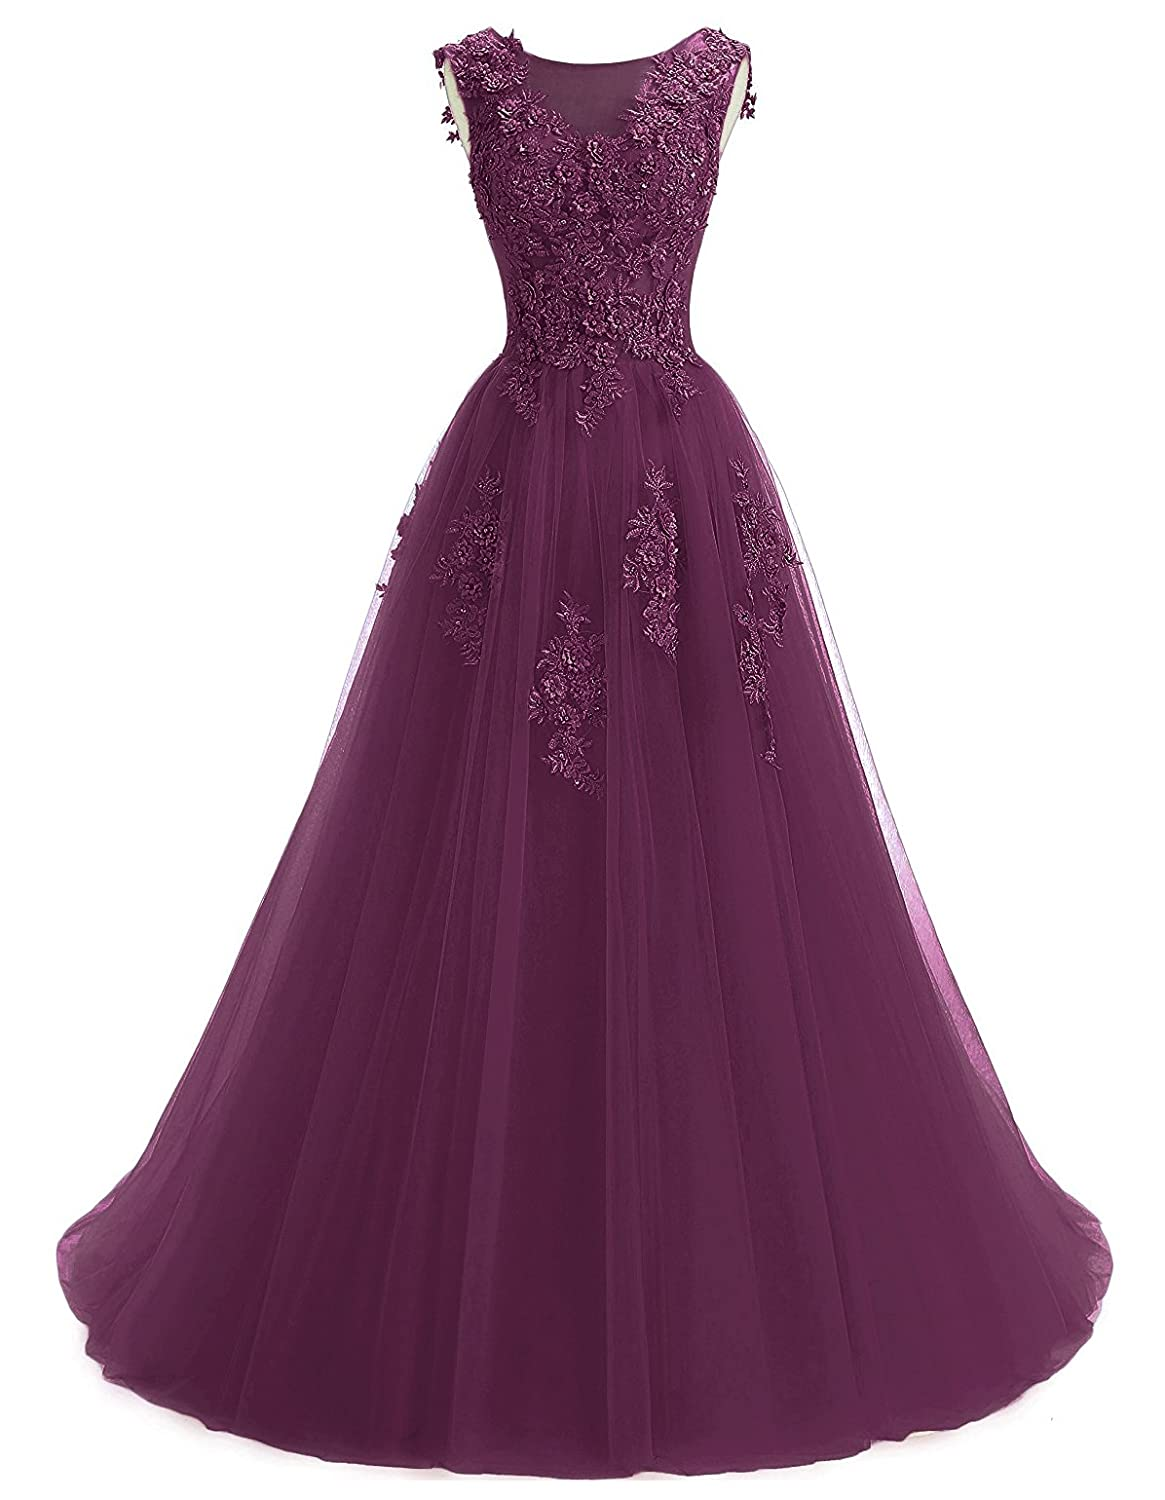 Grape Annxpink Women's Long Sheer Scoop Neck Beaded Pearls Flowers Tulle ALine Prom Gown Formal Evening Dress